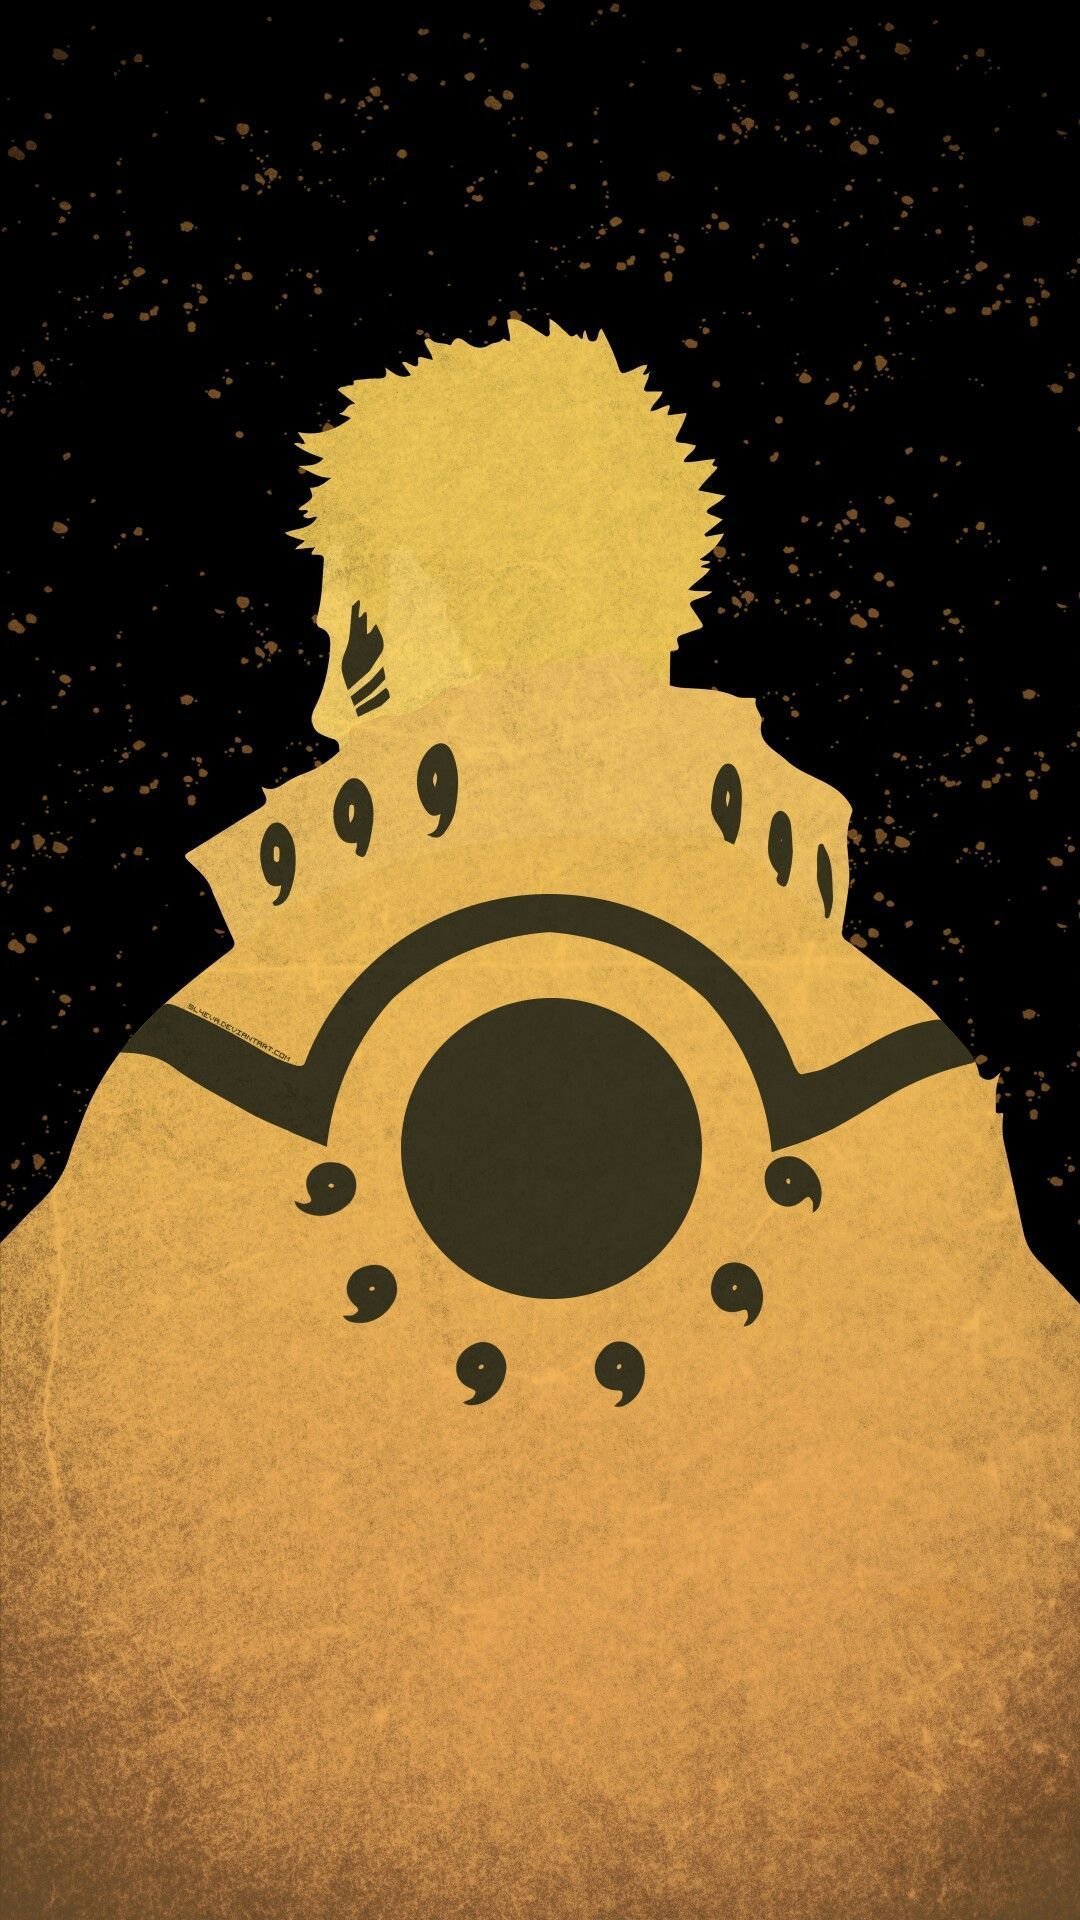 Pin By Jamz On Naruto Wallpaper Naruto Shippuden